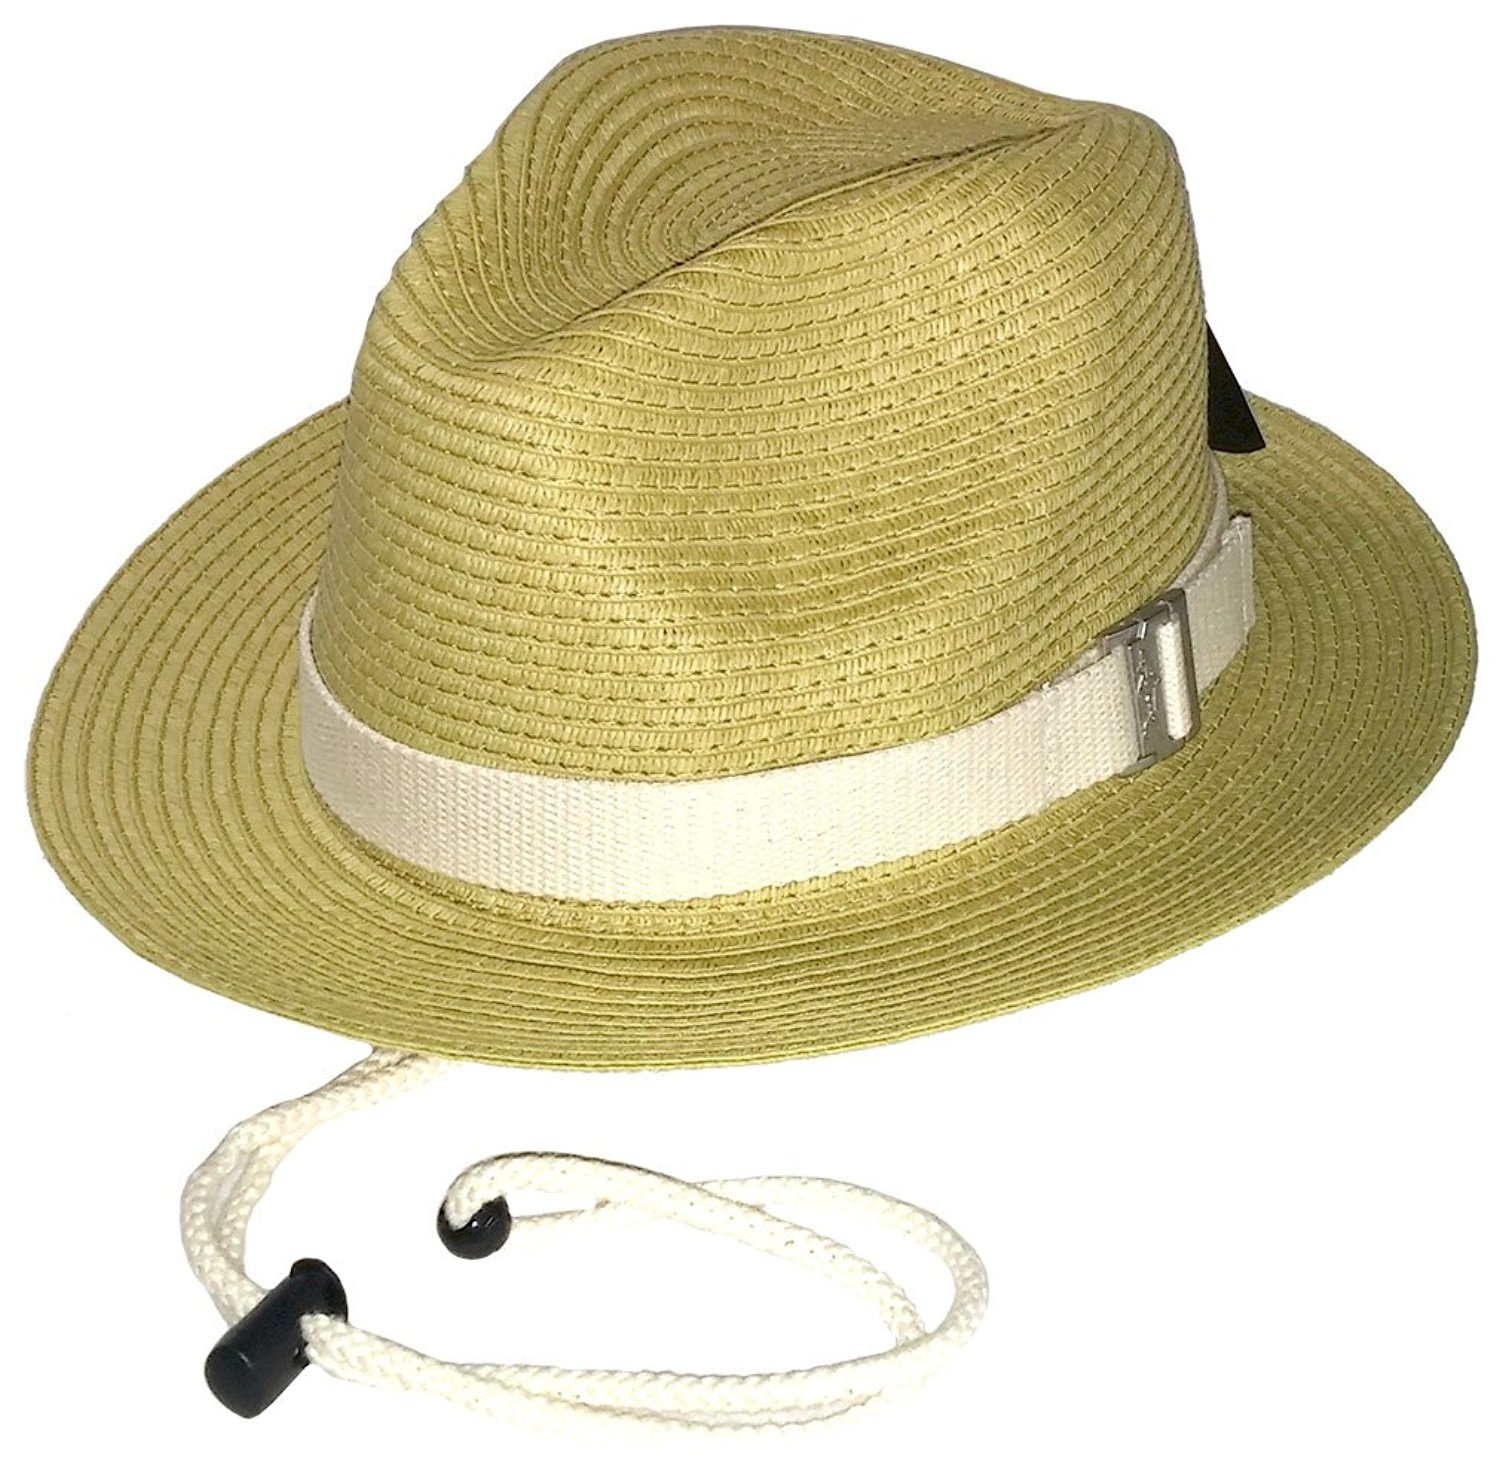 43e600d9aed Get Quotations · GREG NORMAN SHARK Branded Men s Straw Hat - GNS004 -  Natural